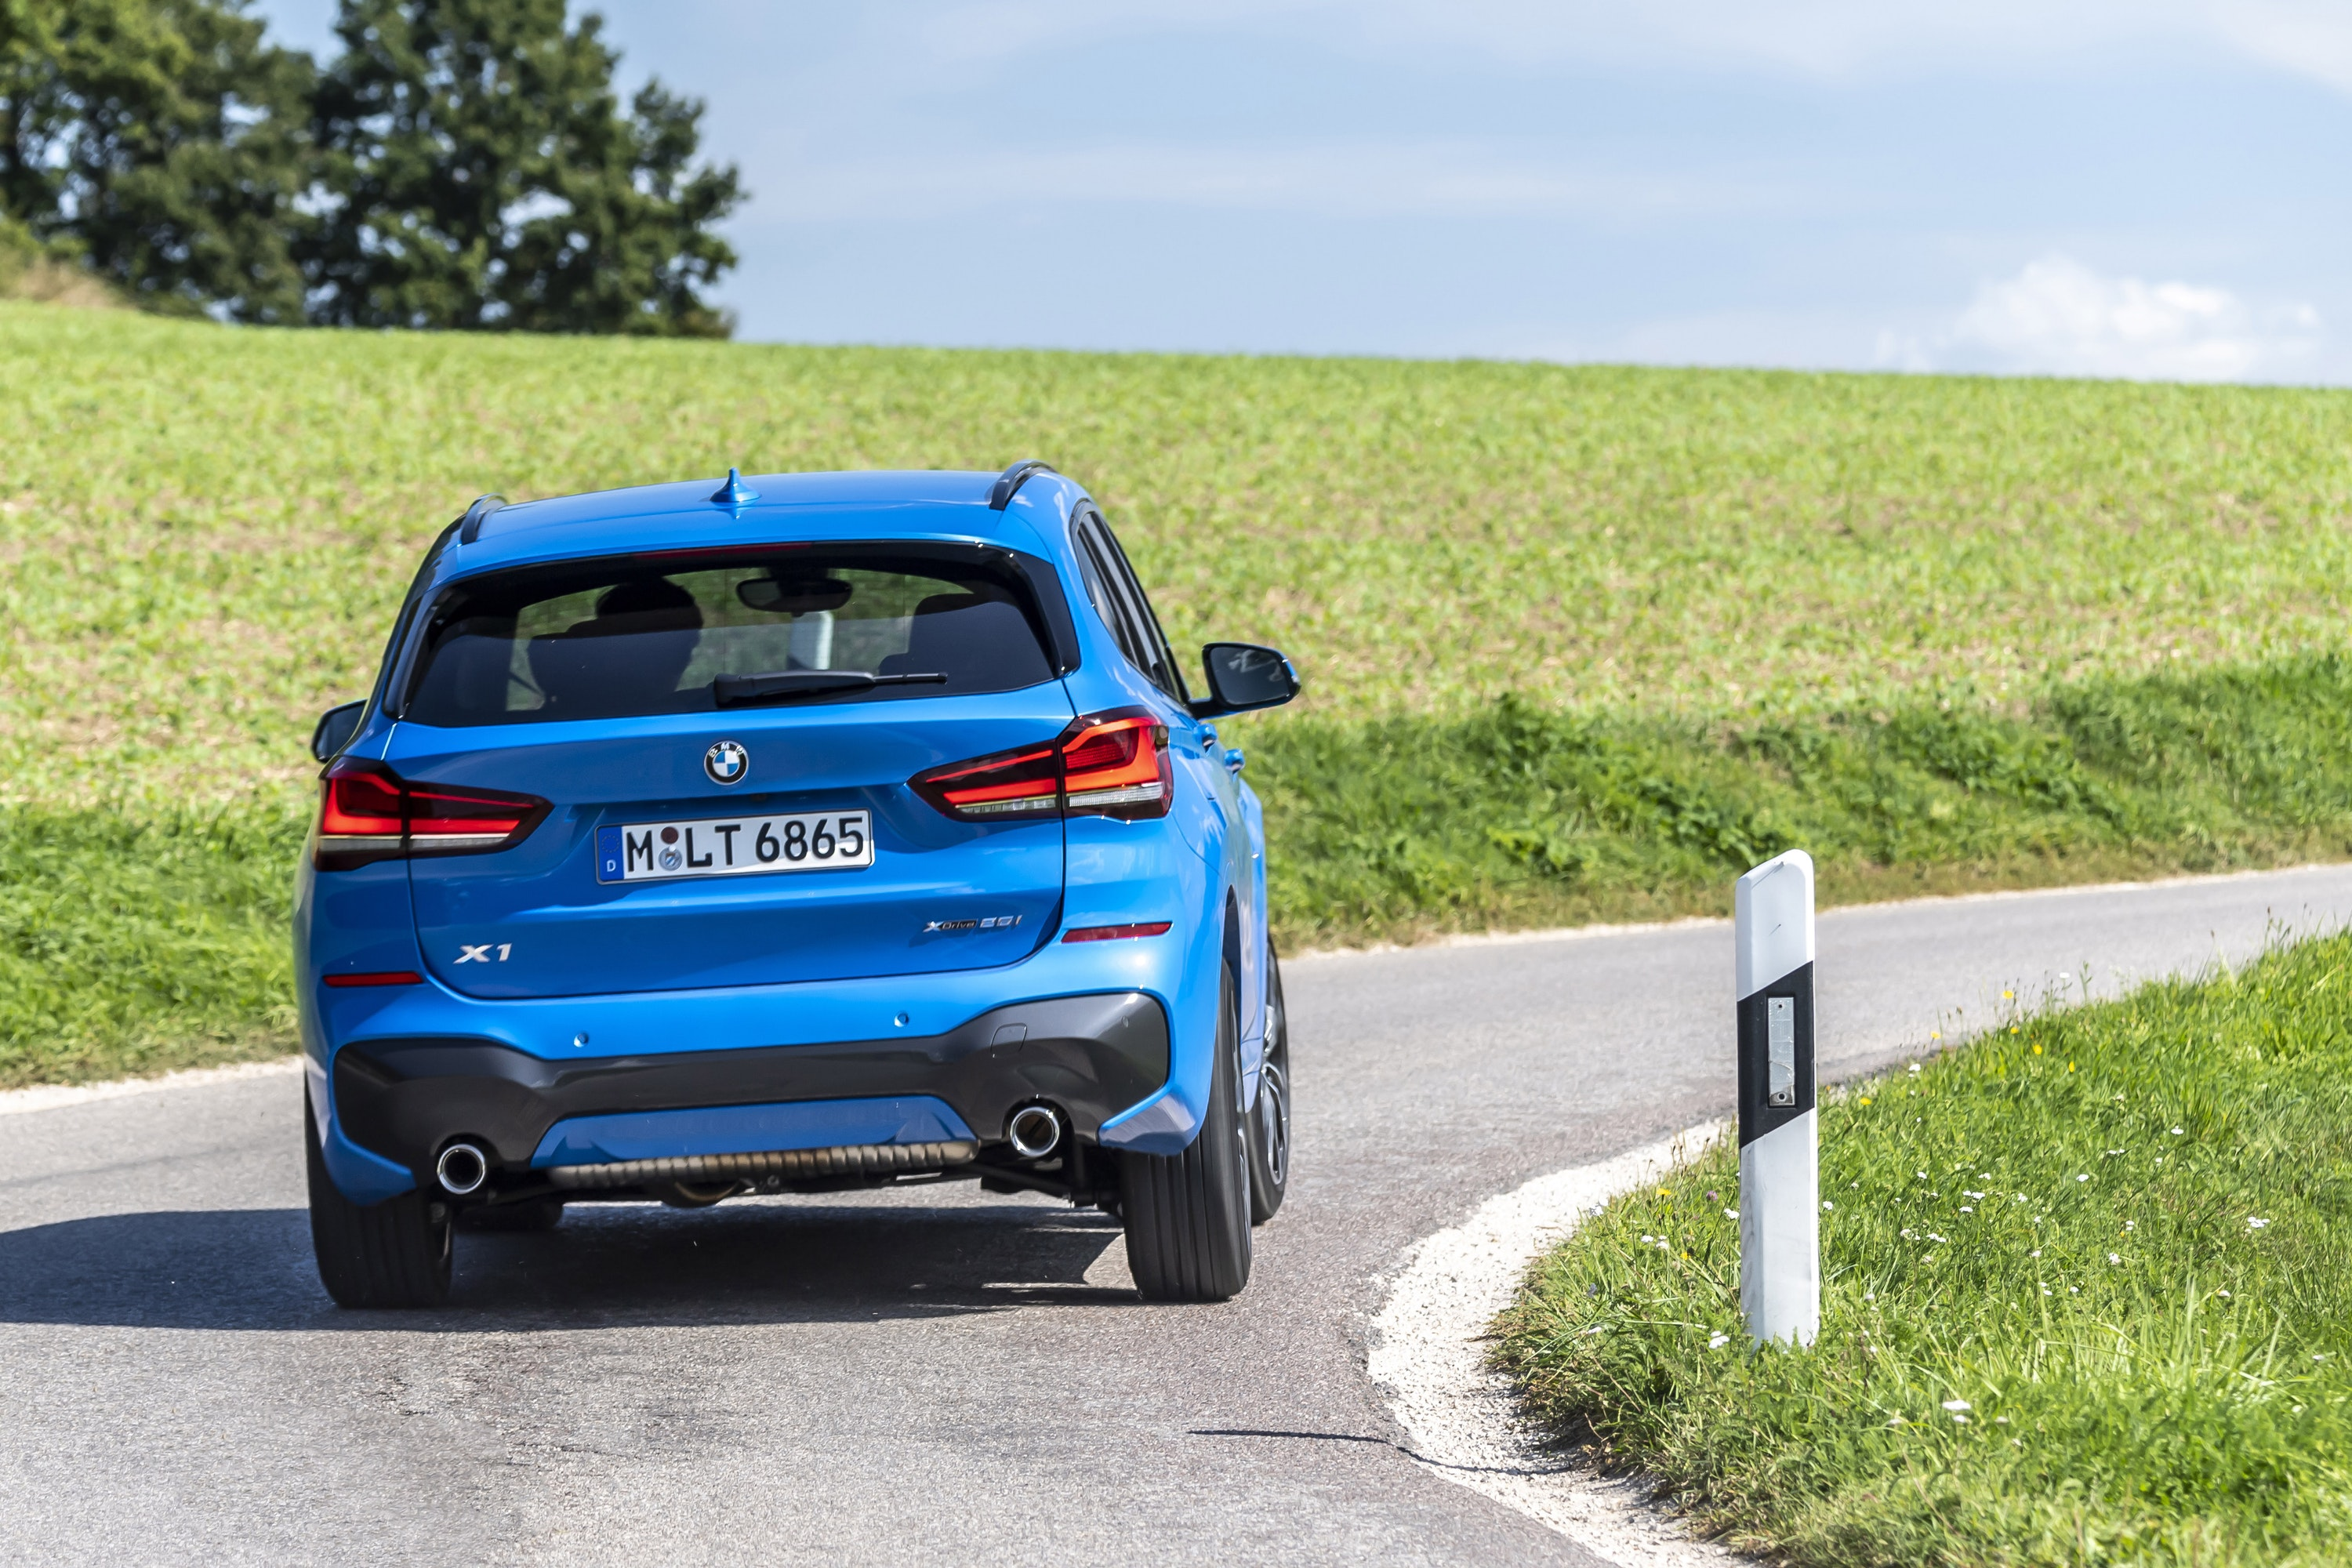 Rear view of a BMW X1 driving around a corner